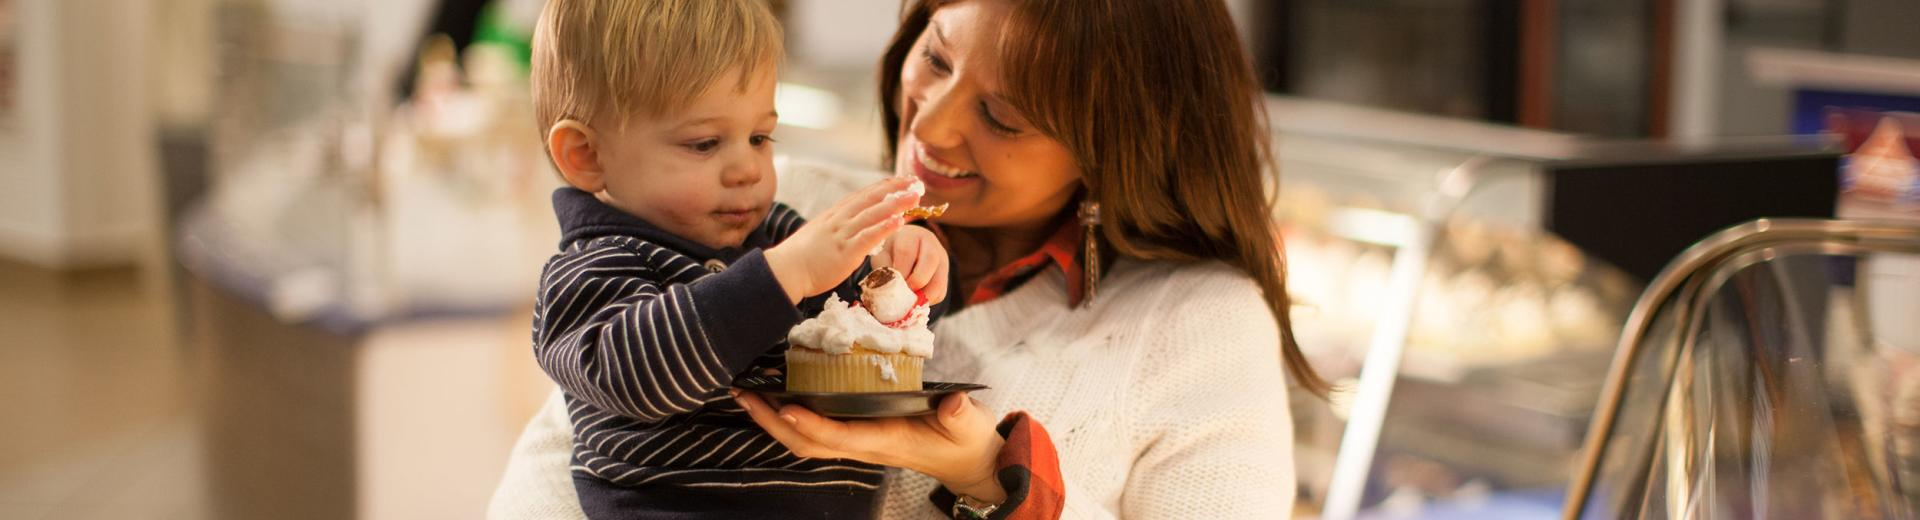 Mother and son eating dessert in Hershey